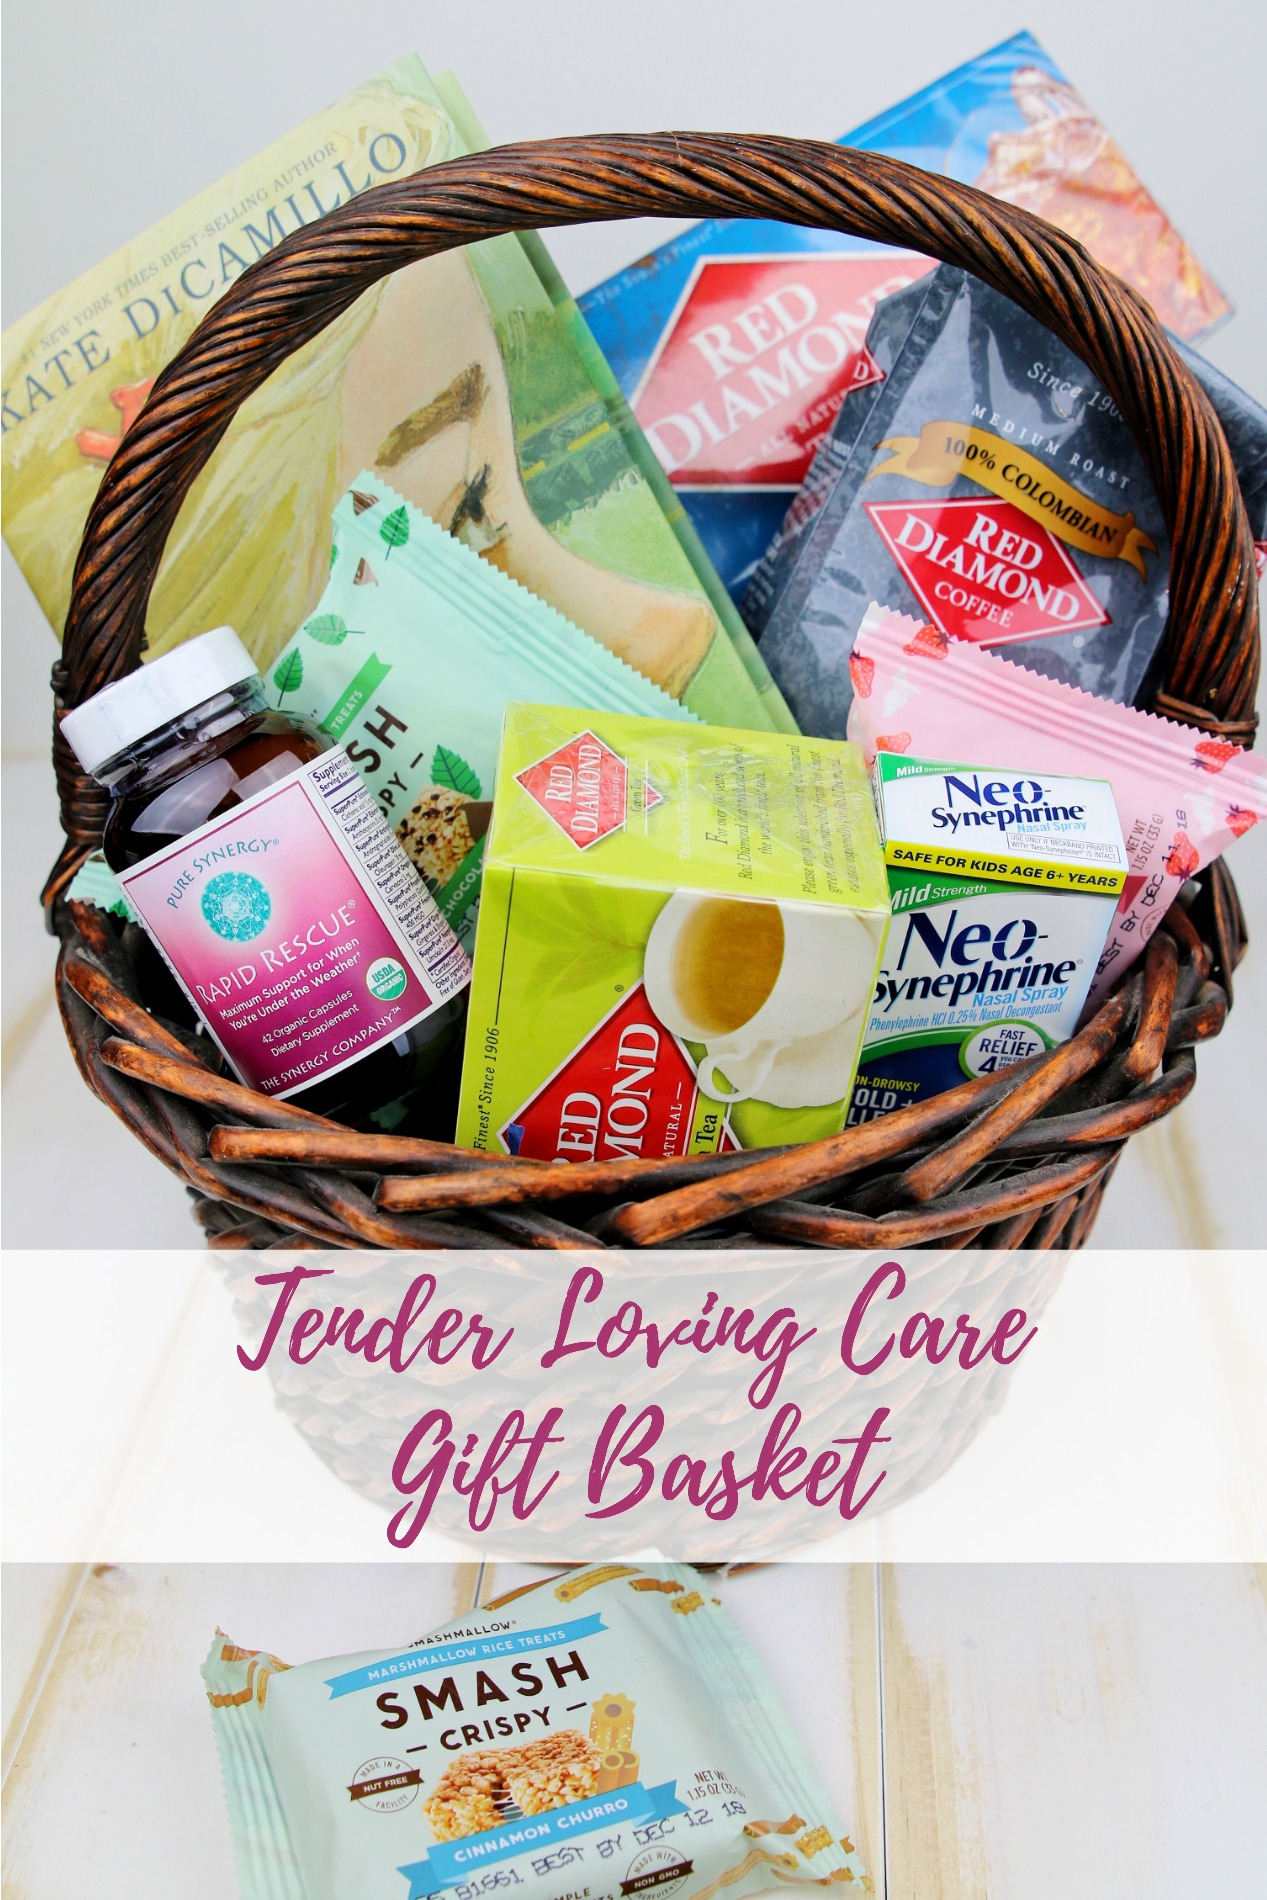 Tender Loving Care Gift Basket